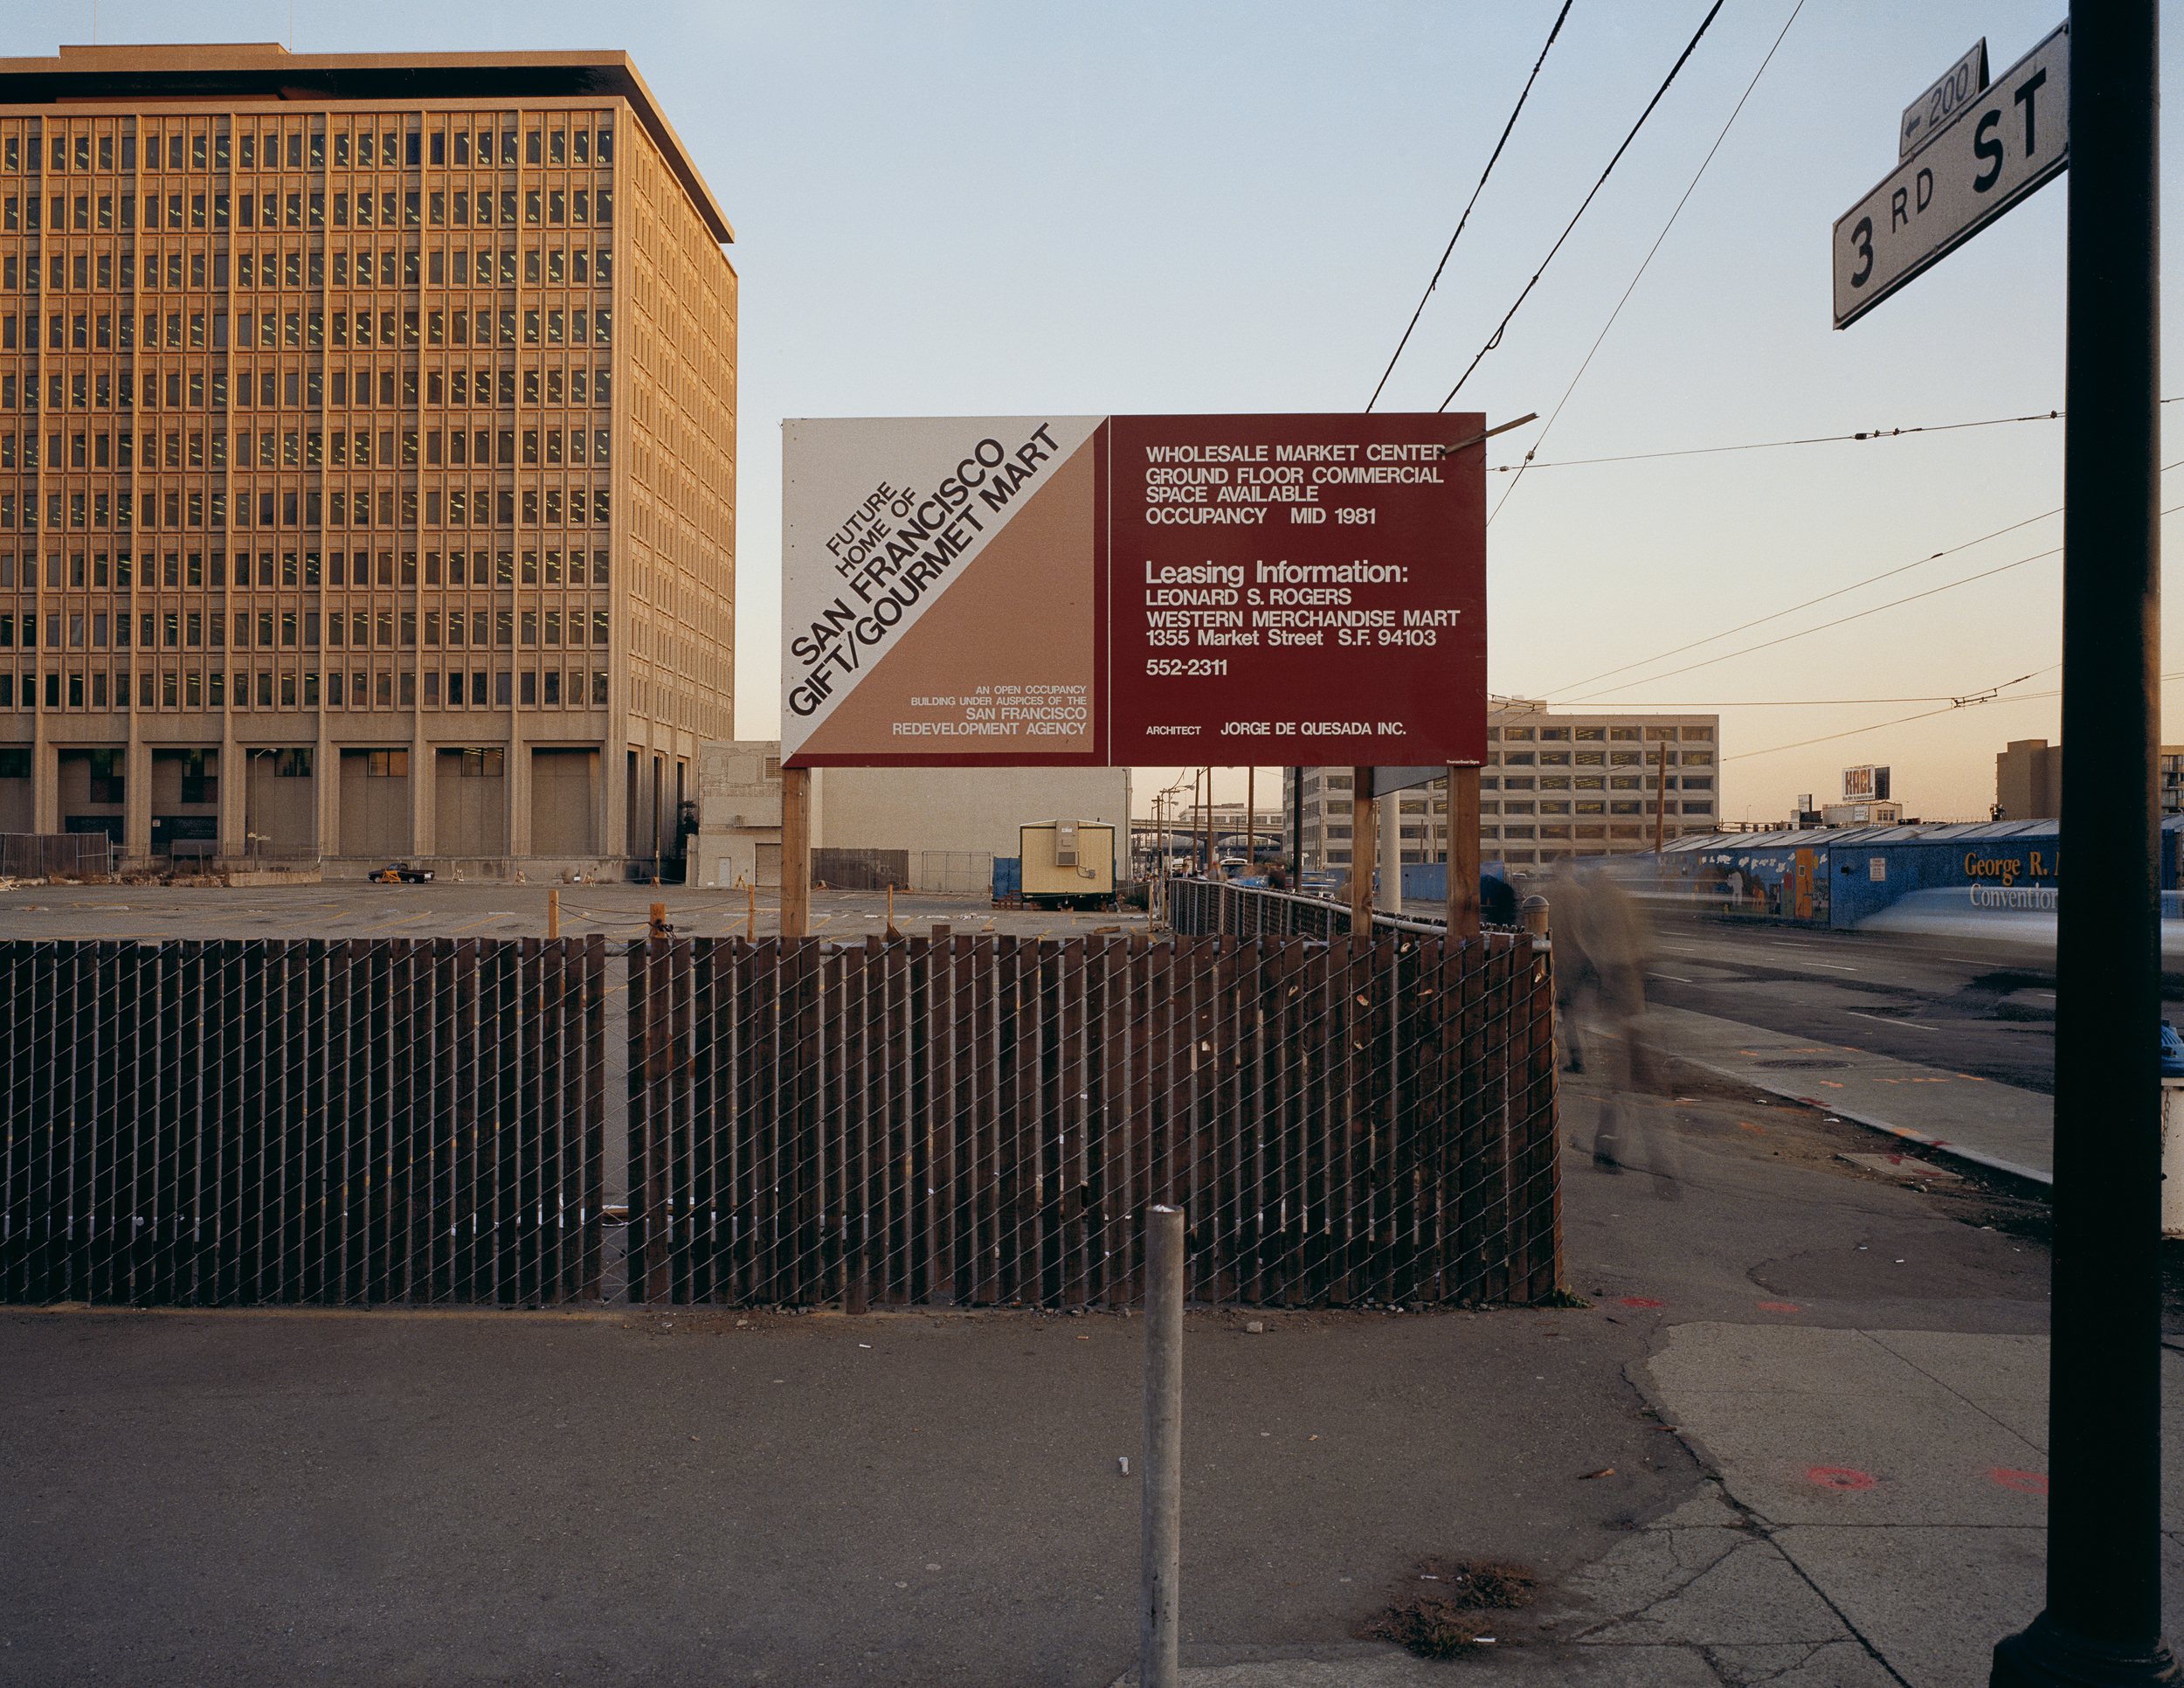 JANET DELANEY Across from the Moscone Center, 3rd at Tehama Street, 1980 Archival Pigment Print, 2016 16 x 20 inches, edition of 5 20 x 24 inches, edition of 2 30 x 40 inches, edition of 2